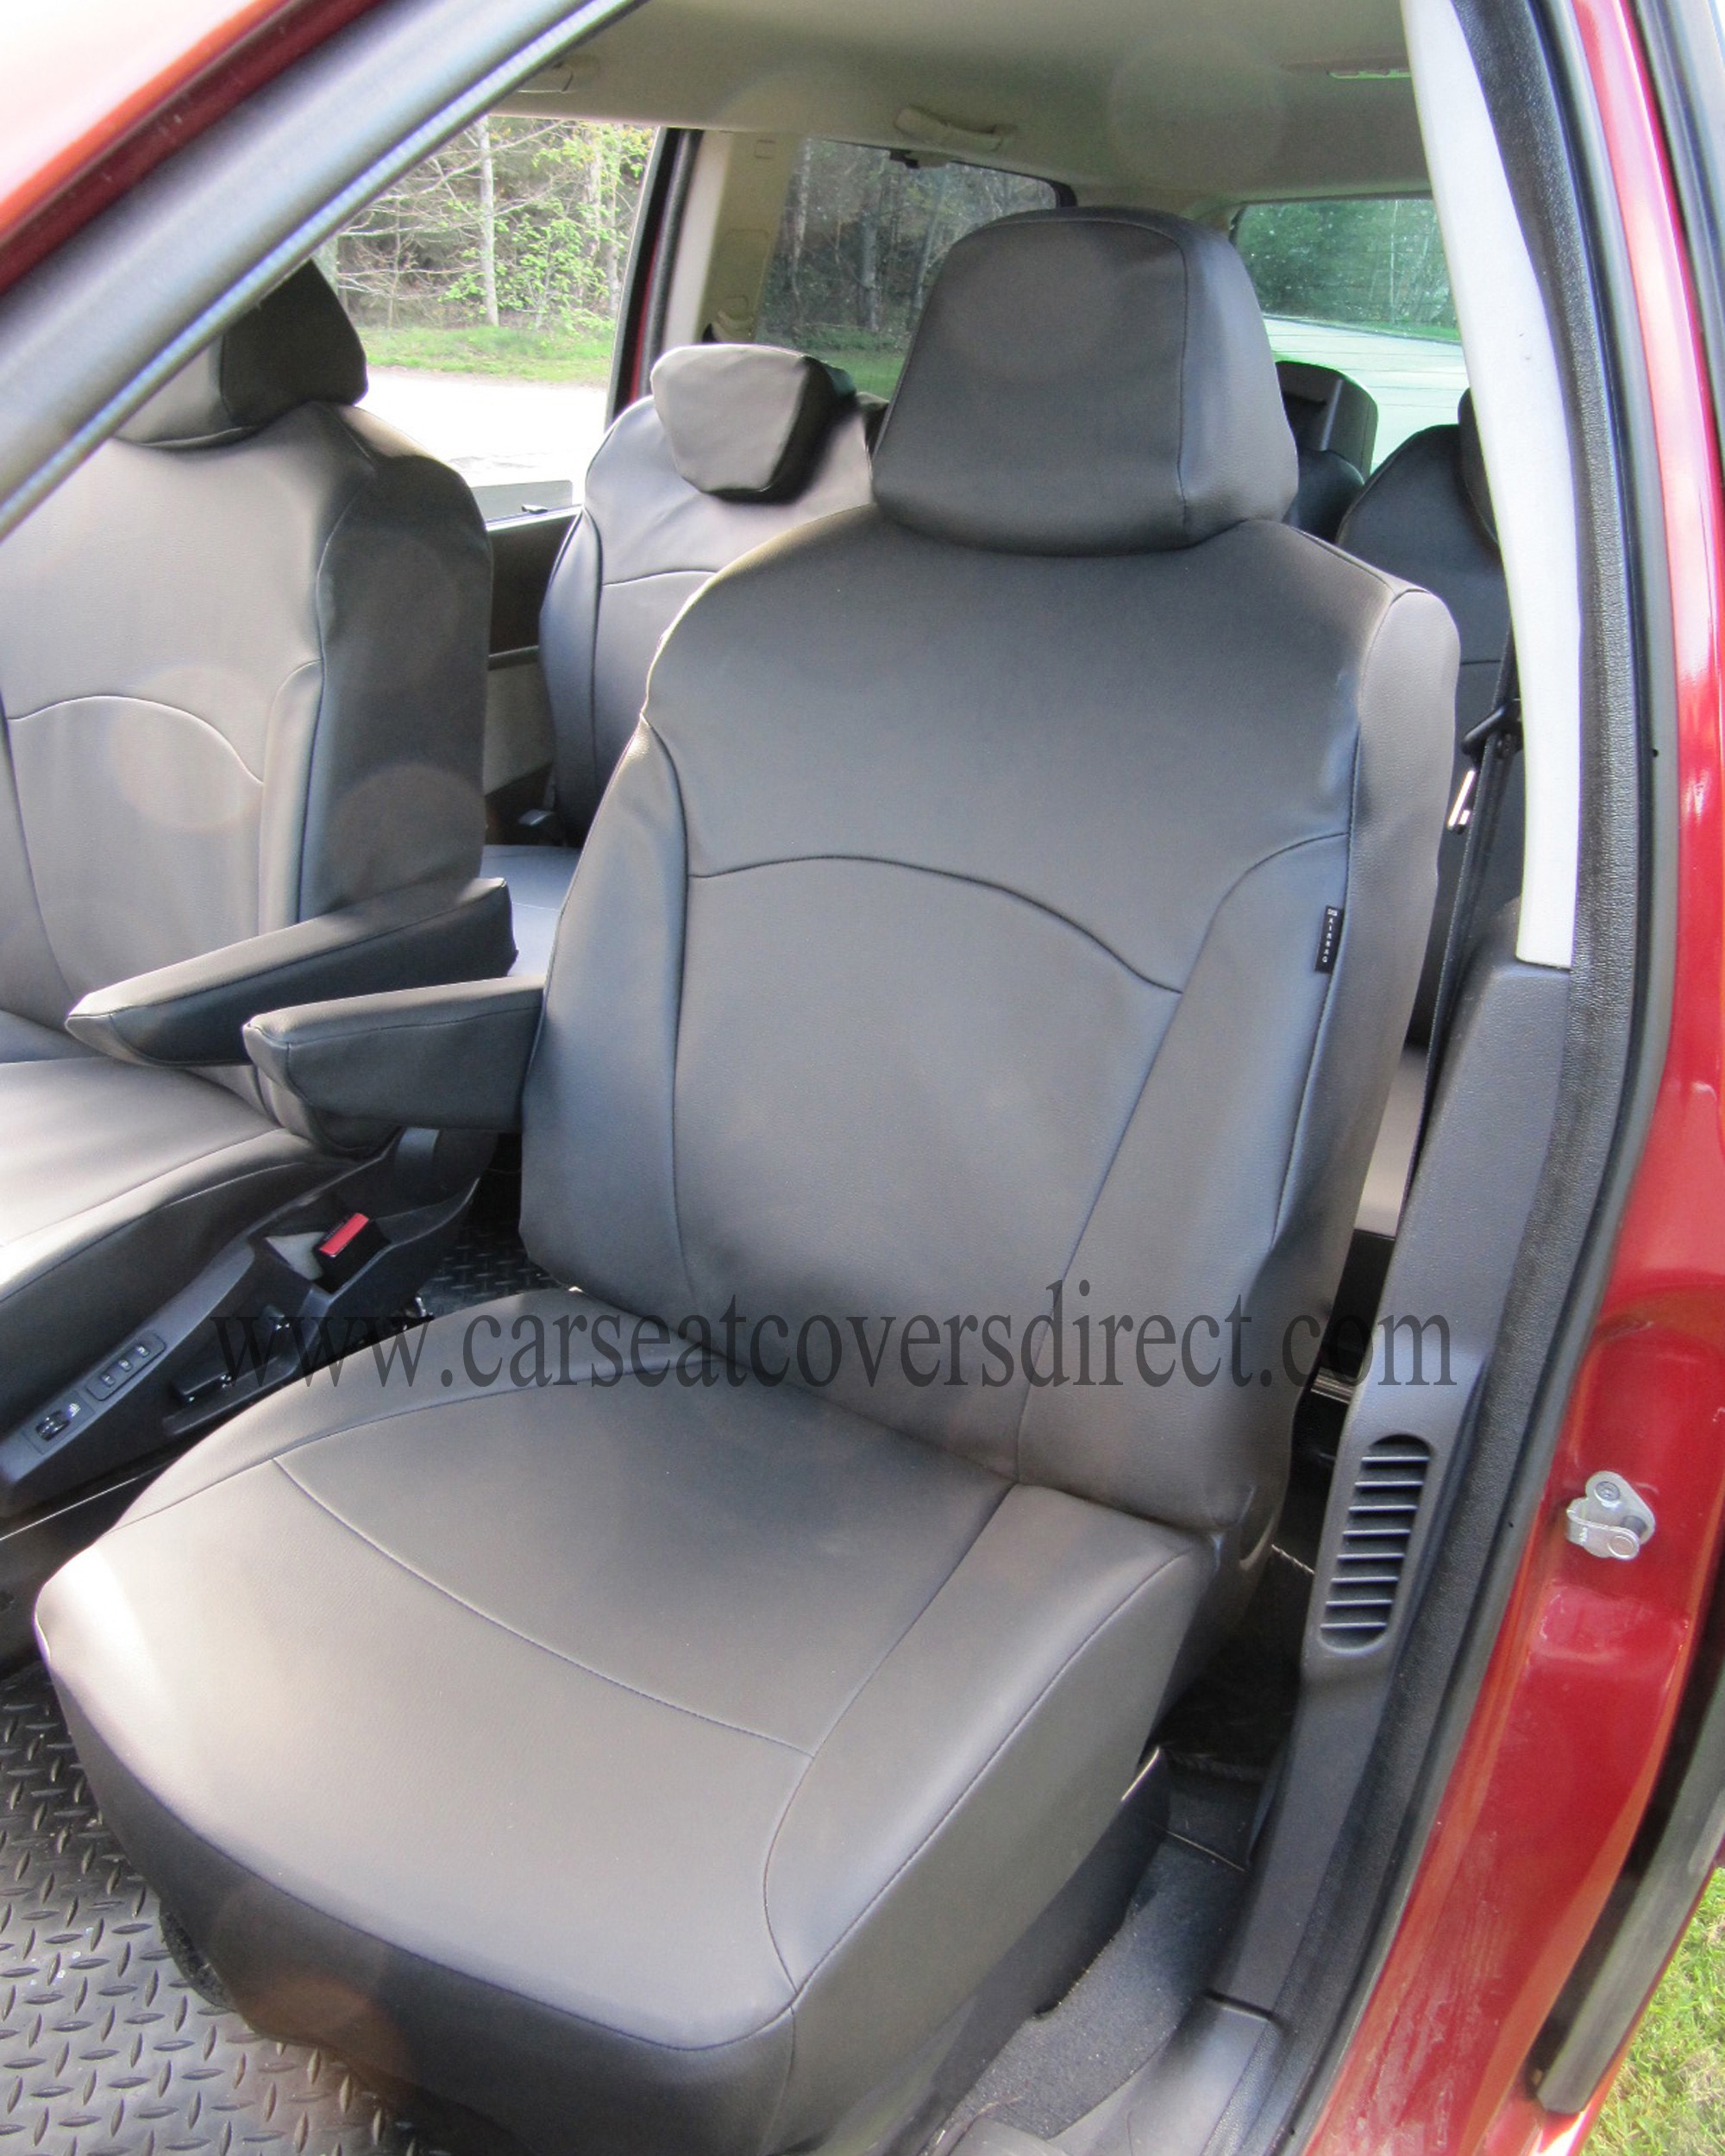 Citroen C8 2nd Gen (2008-Present) Seat Covers_10